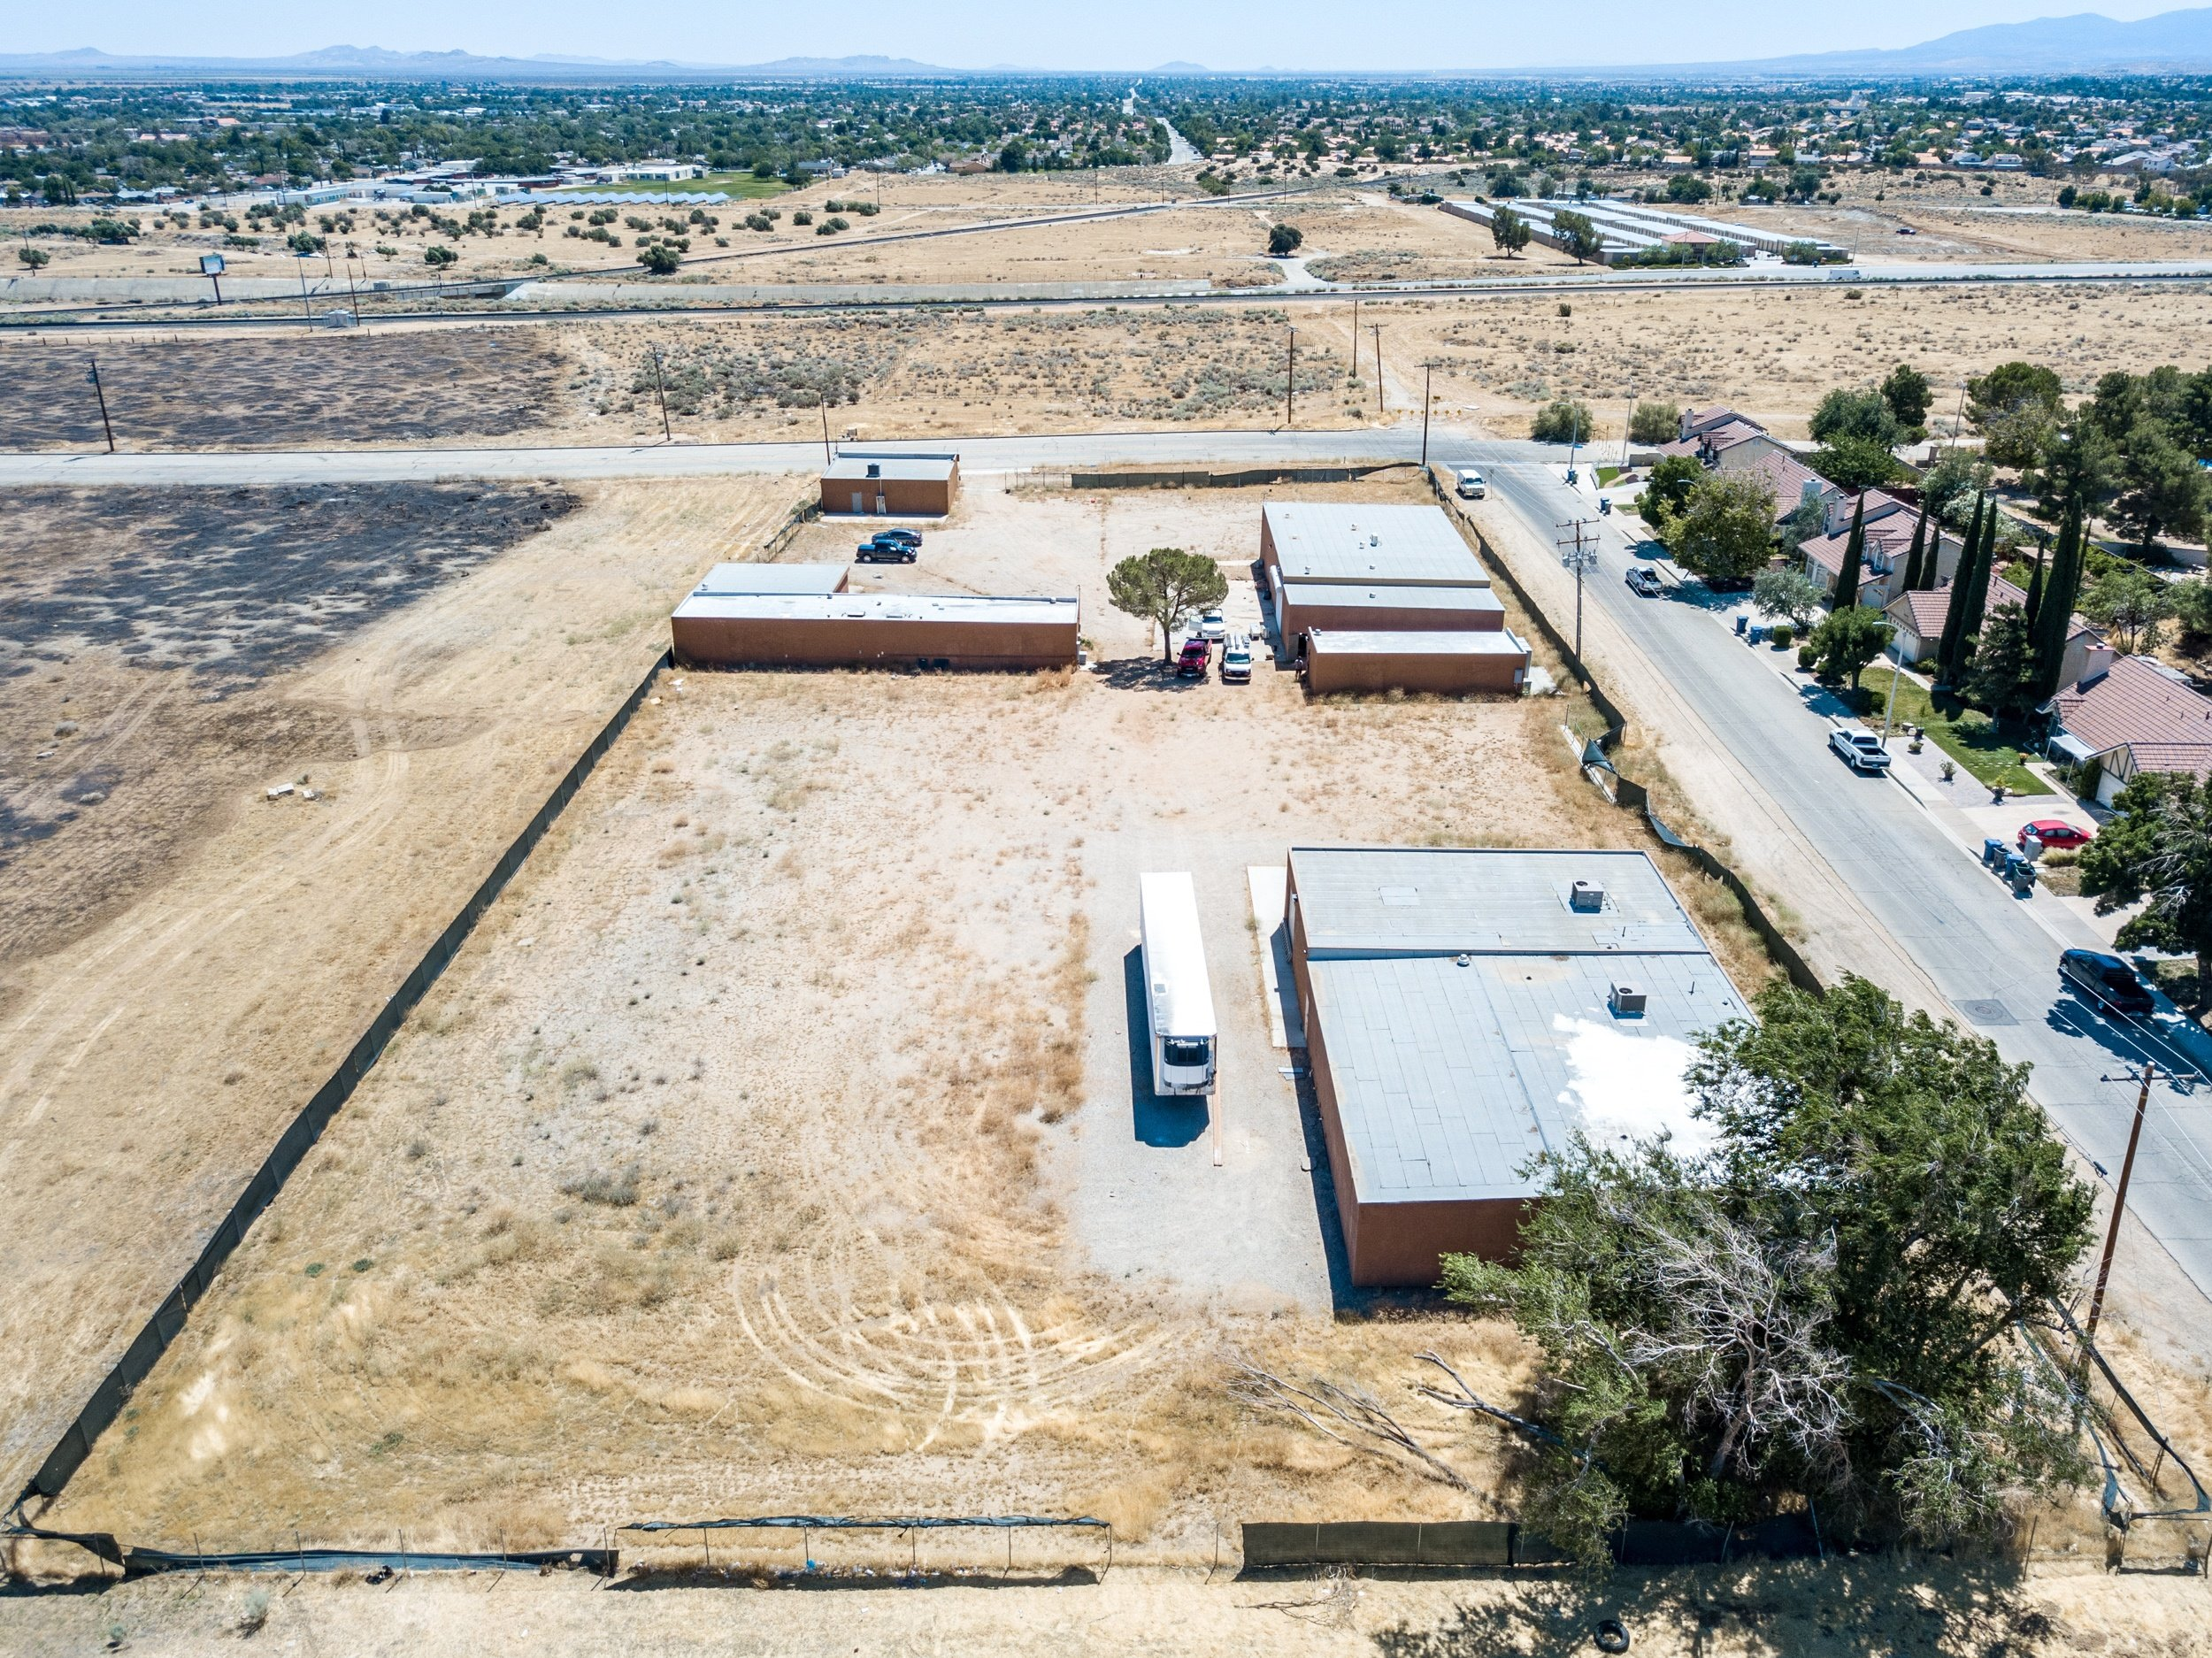 Palmdale Industrial Real Estate Rear Drone